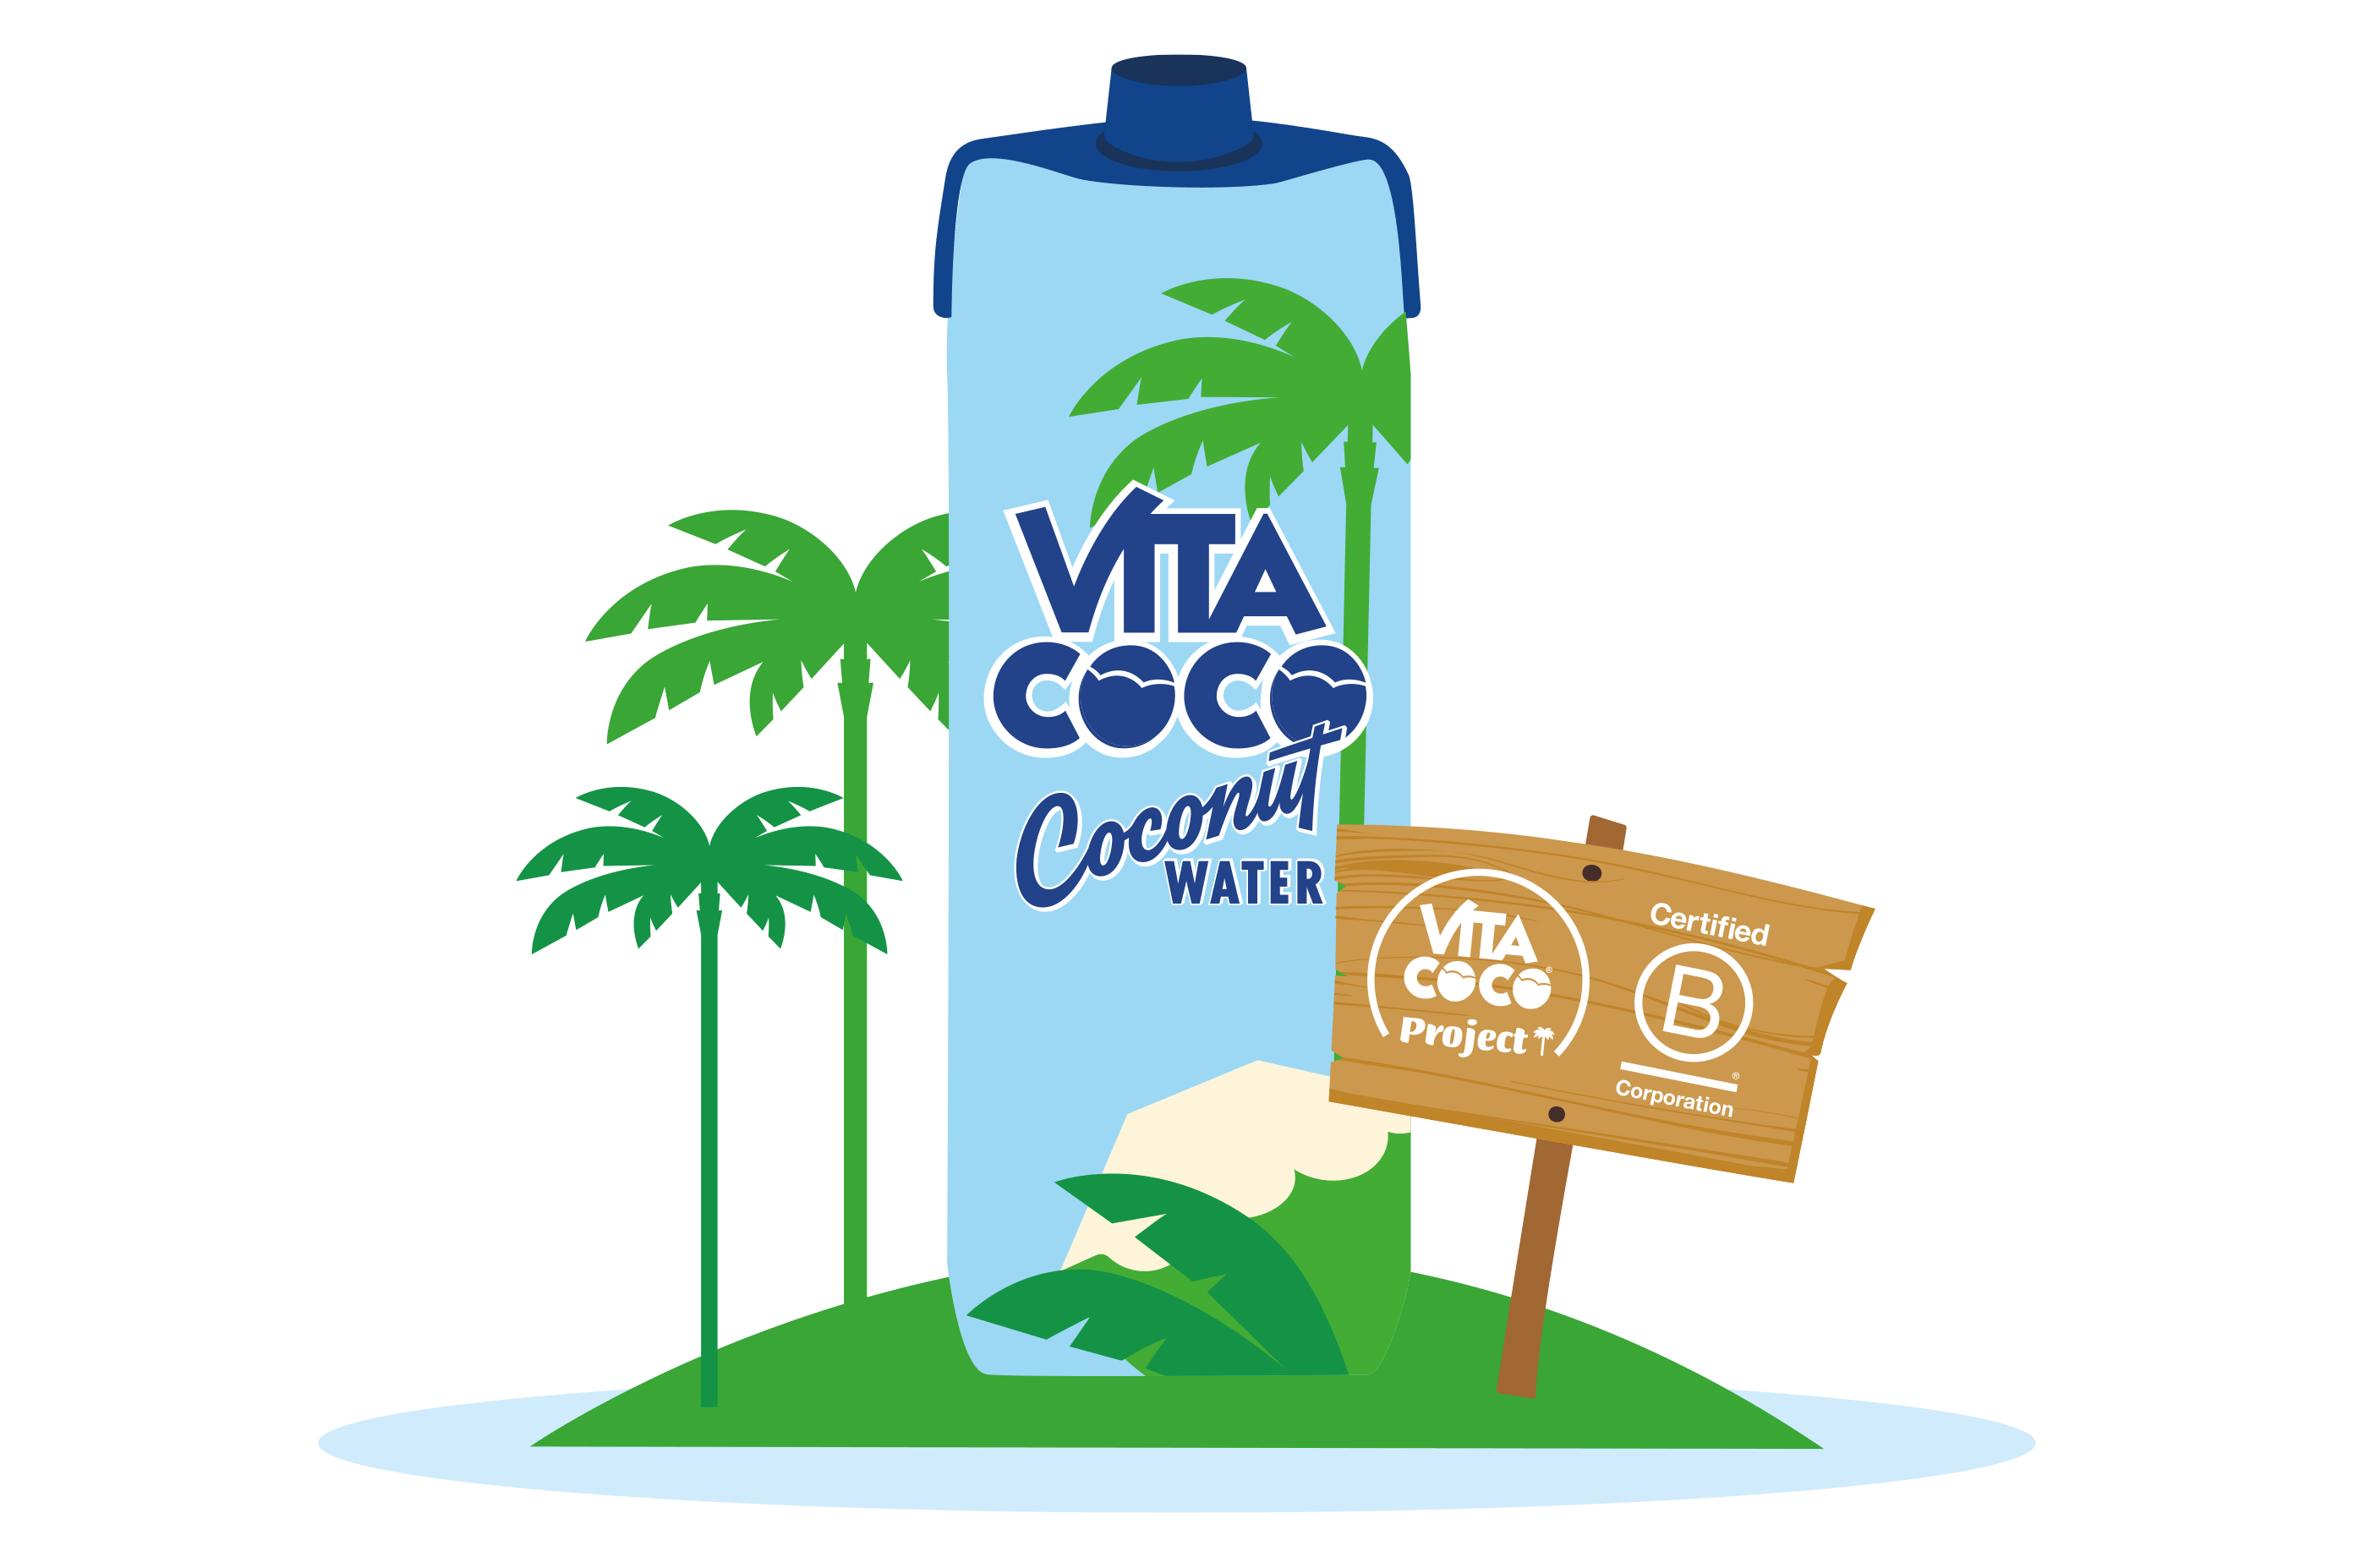 Sign for B Certified and Vita Coco Project